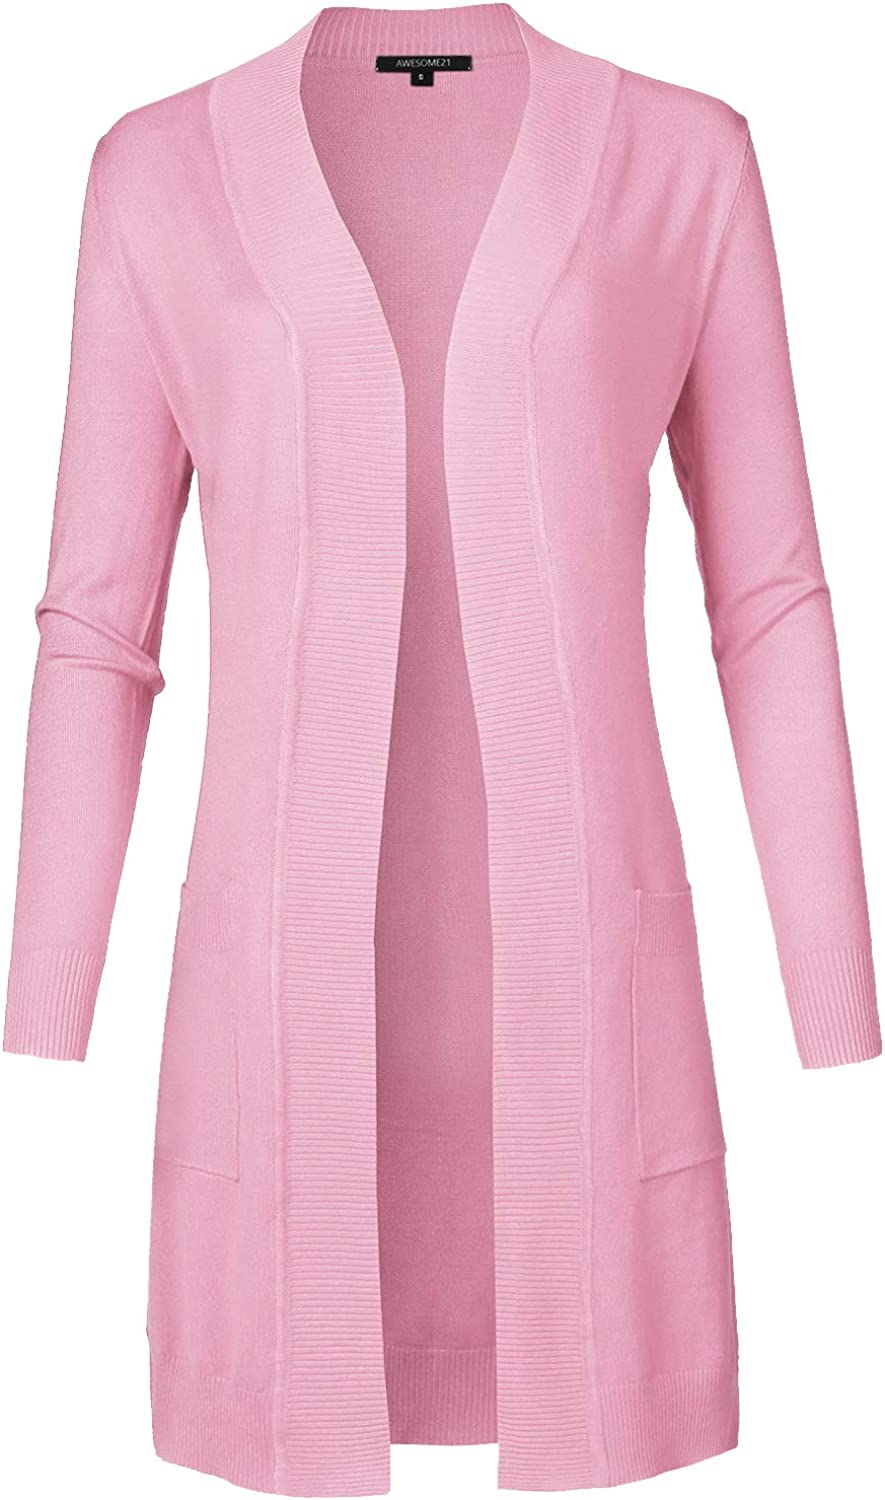 Women's Solid Soft Stretch Long Line Long Sleeve Open Front Knit Cardigan